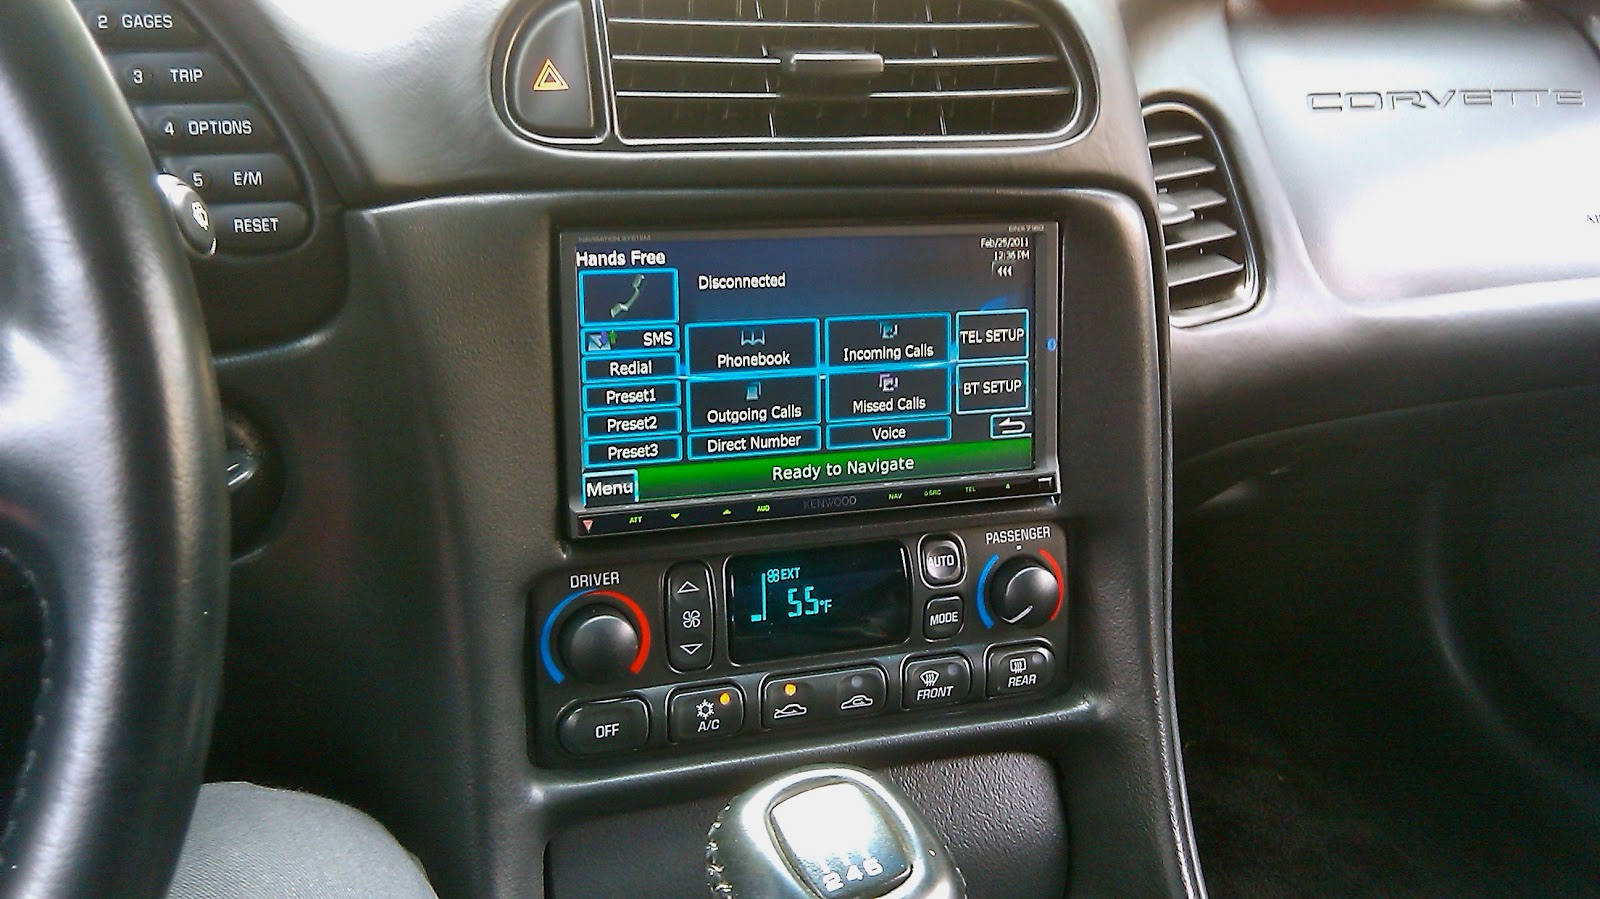 1997 1998 1999 2000 2001 2002 2003 2004+Corvette+Custom+Indash+JEREMY+T?resize=665%2C374 1998 chevy tahoe radio wiring diagram the best wiring diagram 2017 radio wiring harness for 2005 chevy tahoe at edmiracle.co